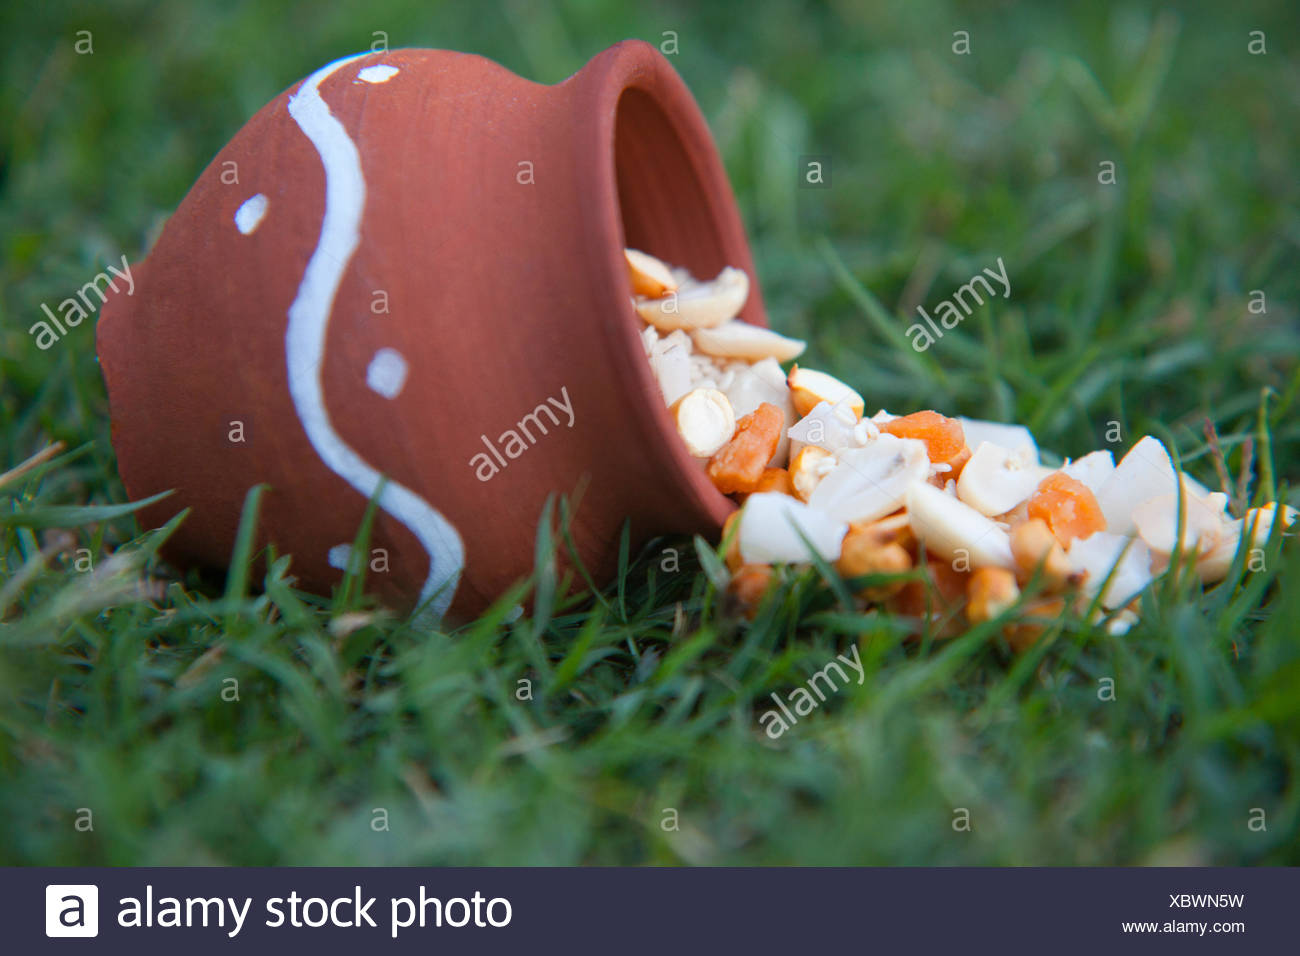 Ingredients spilling out of earthen pot - Stock Image